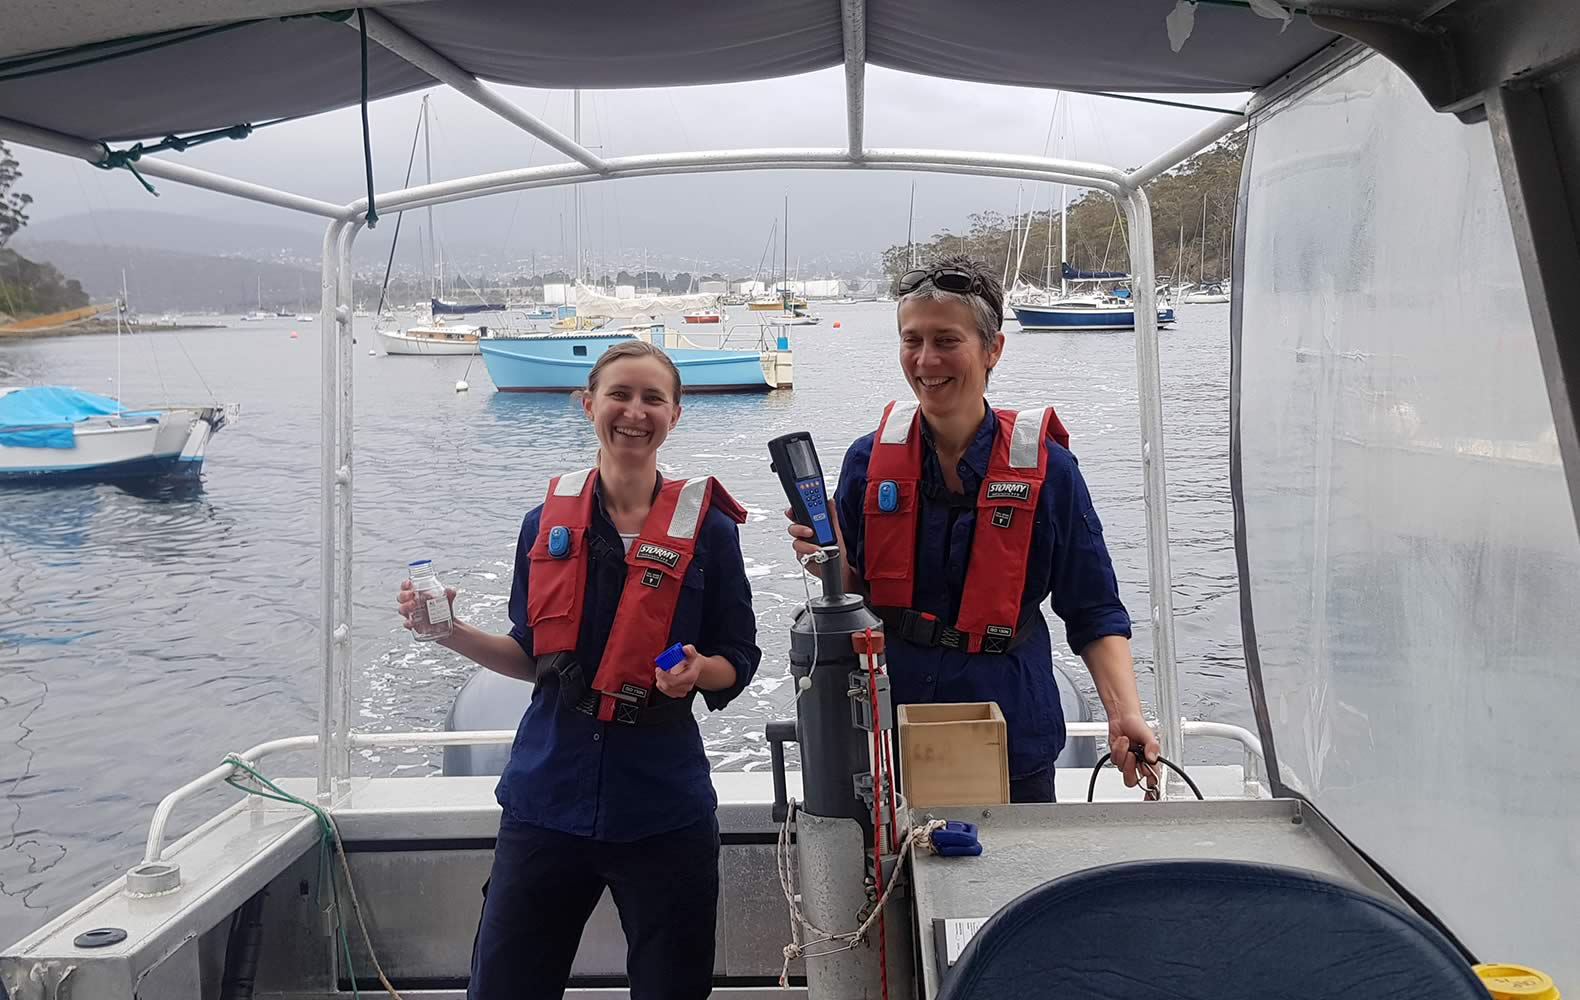 DEP team members Bernadette Proemse and Inger Visby sampling the Derwent in cooperation with the EPA. Photo: Derwent Estuary Program.